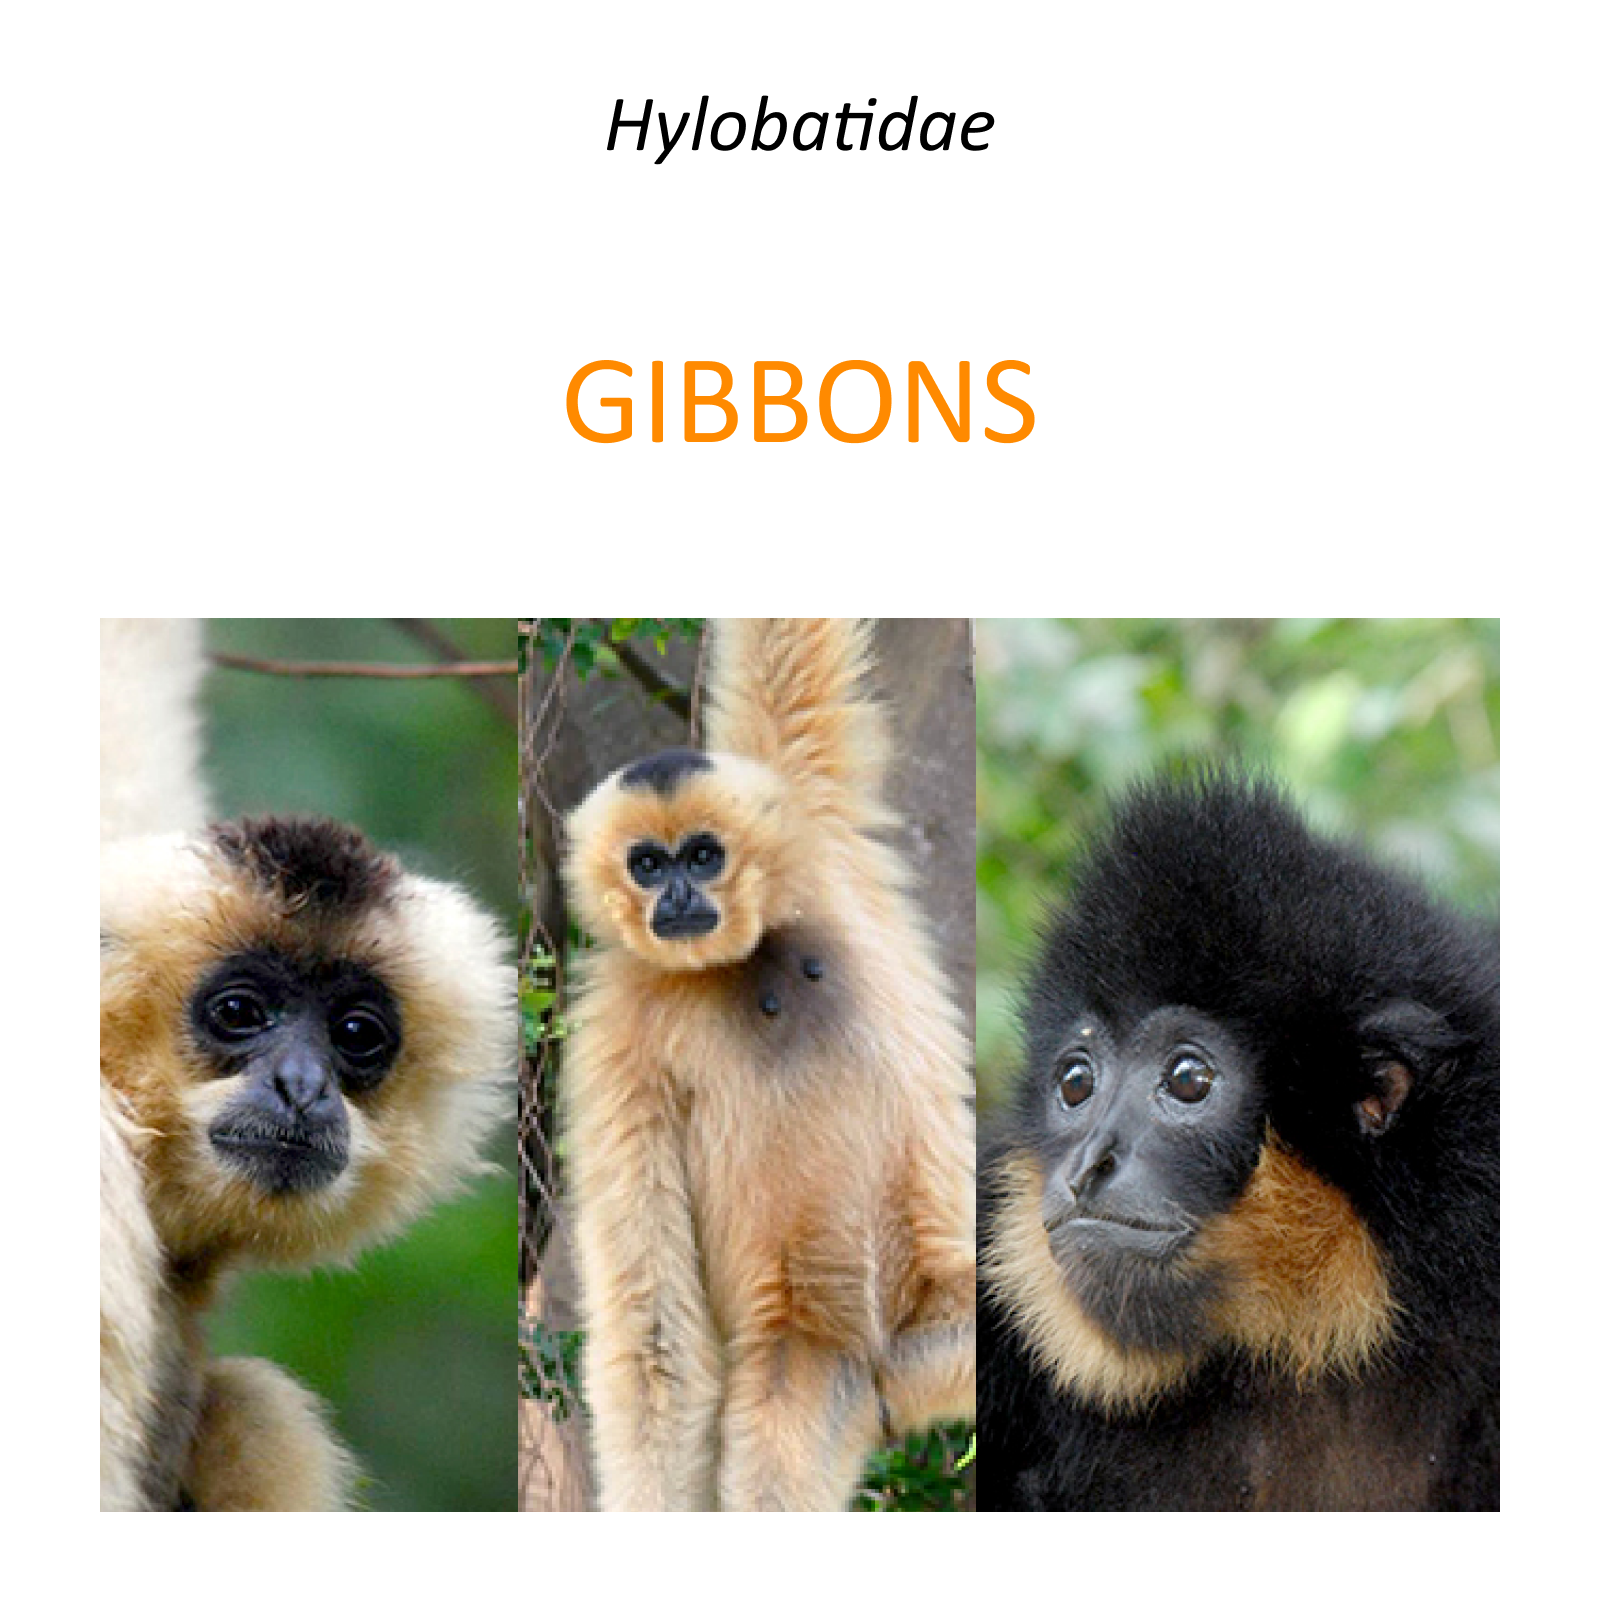 Gibbons rescue and conservation project